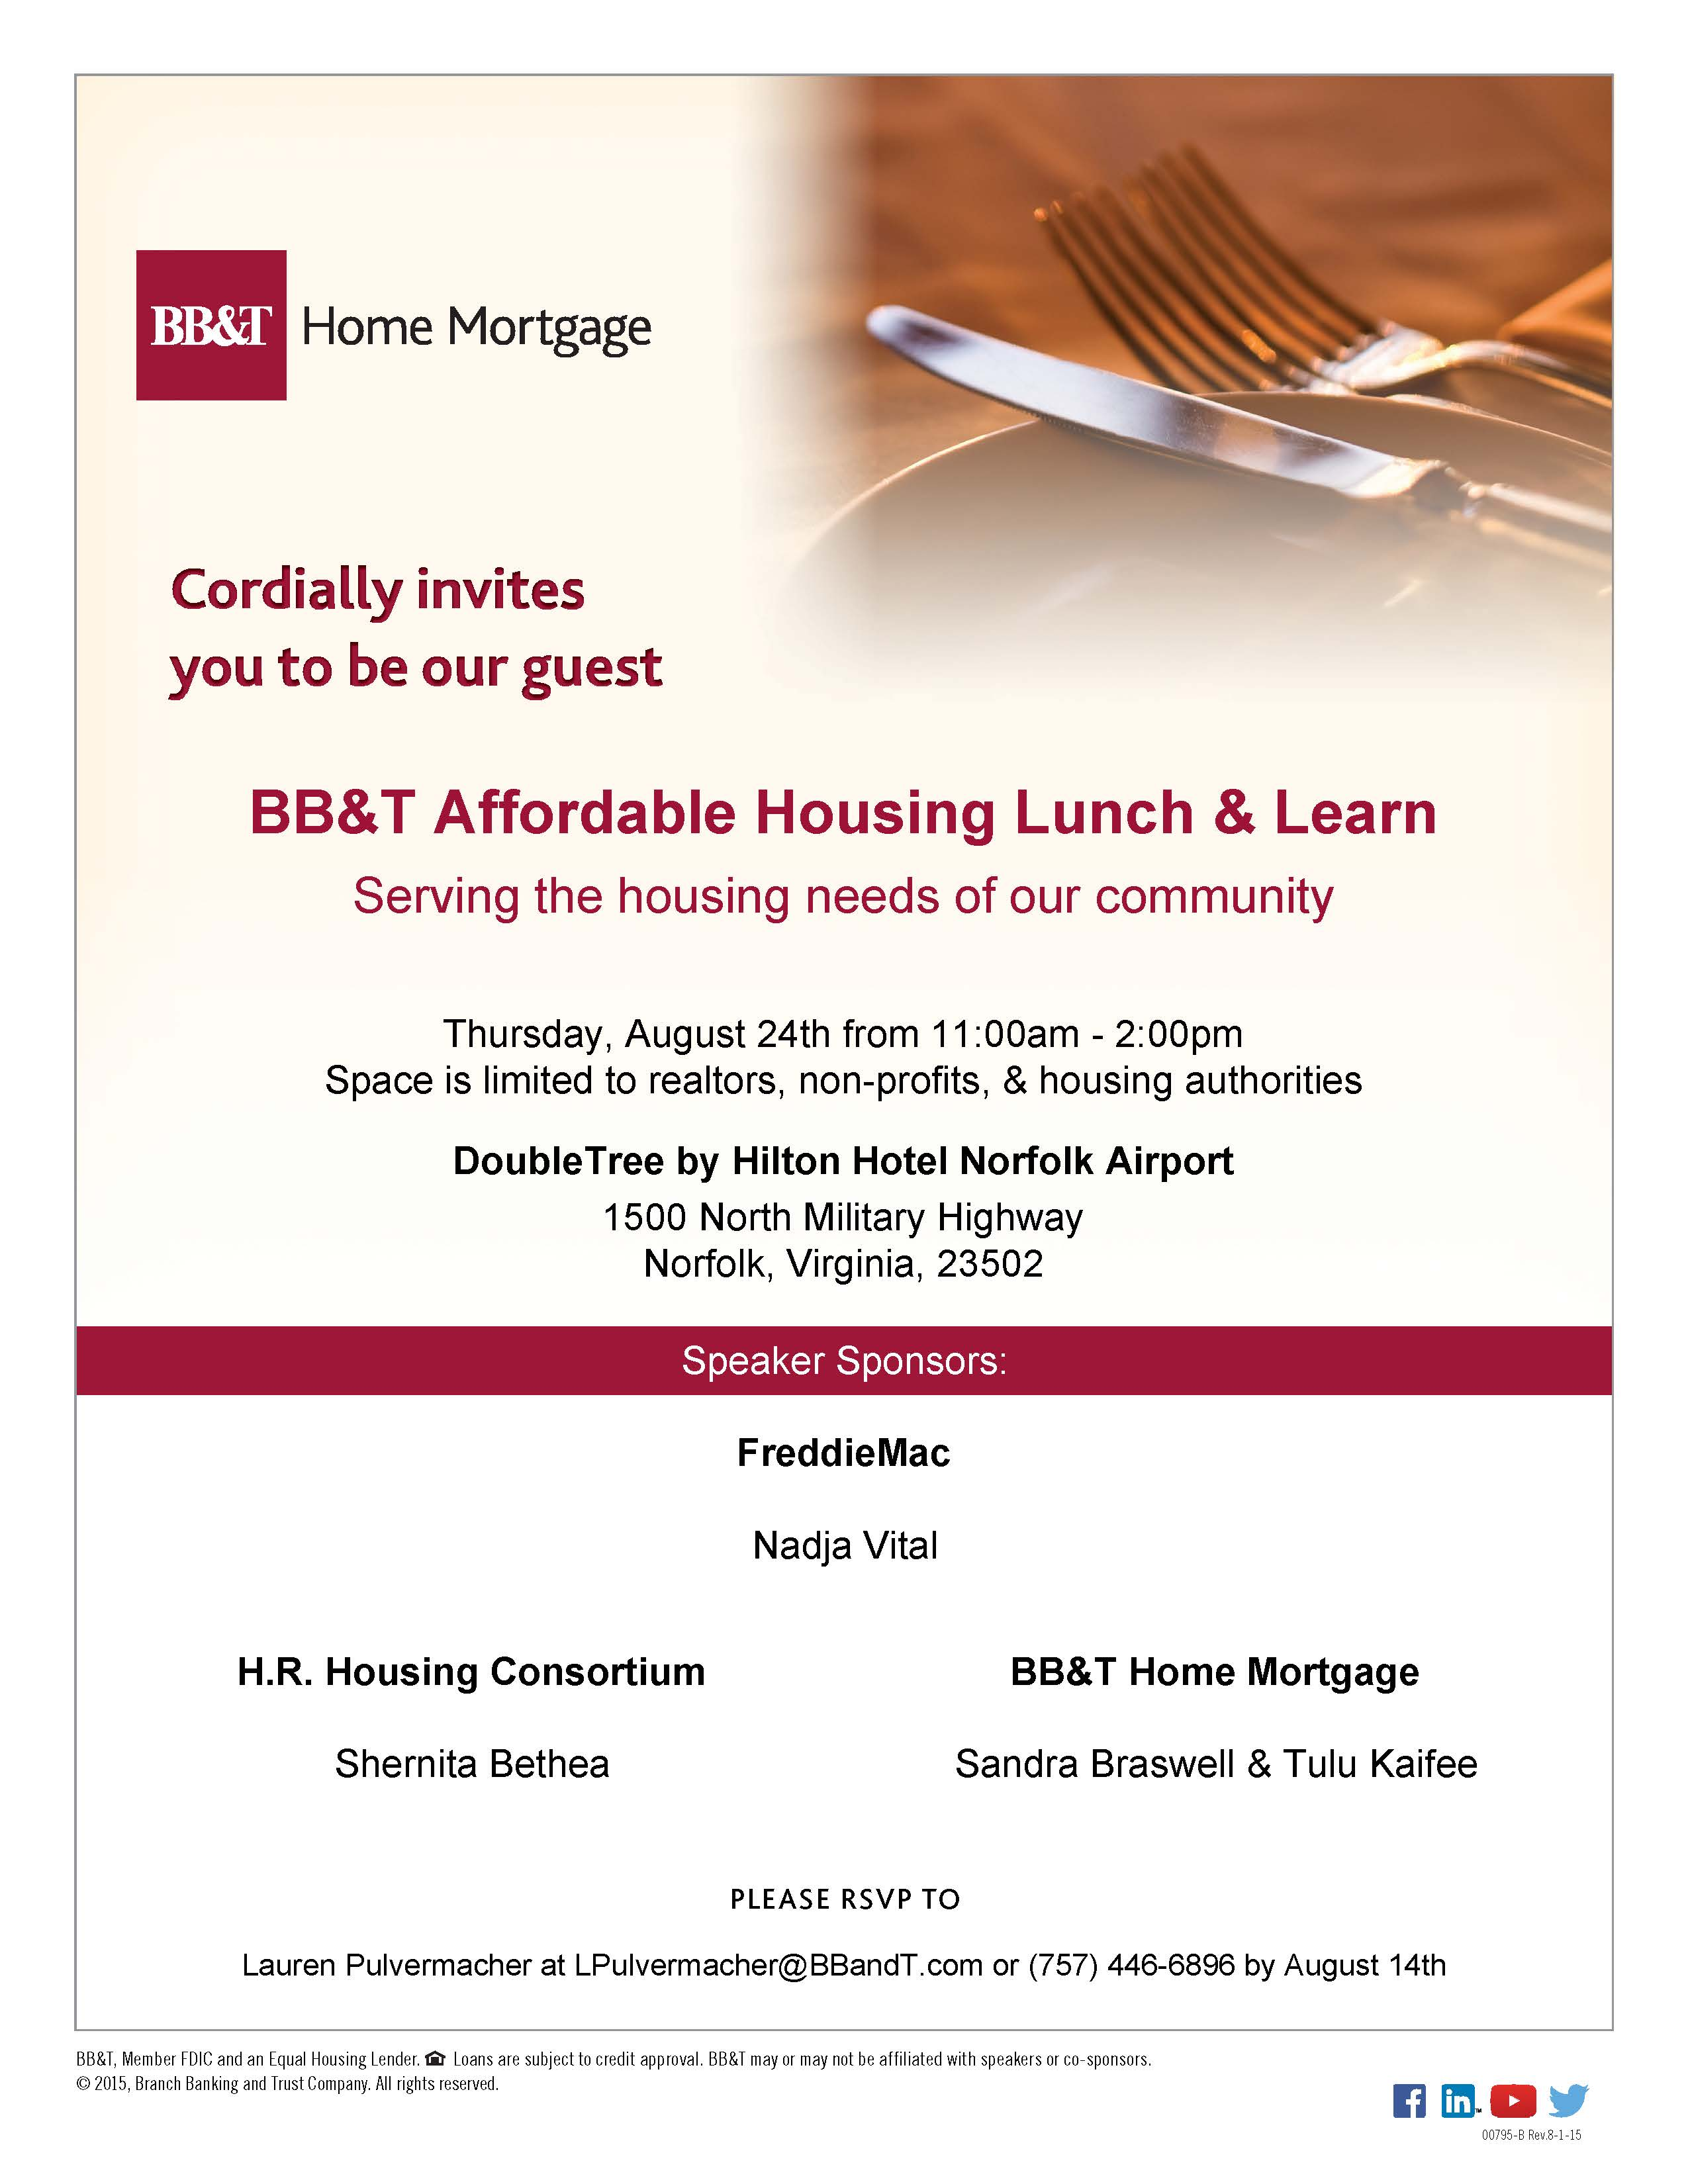 BB&T Affordable Housing Lunch & Learn | Member News | News